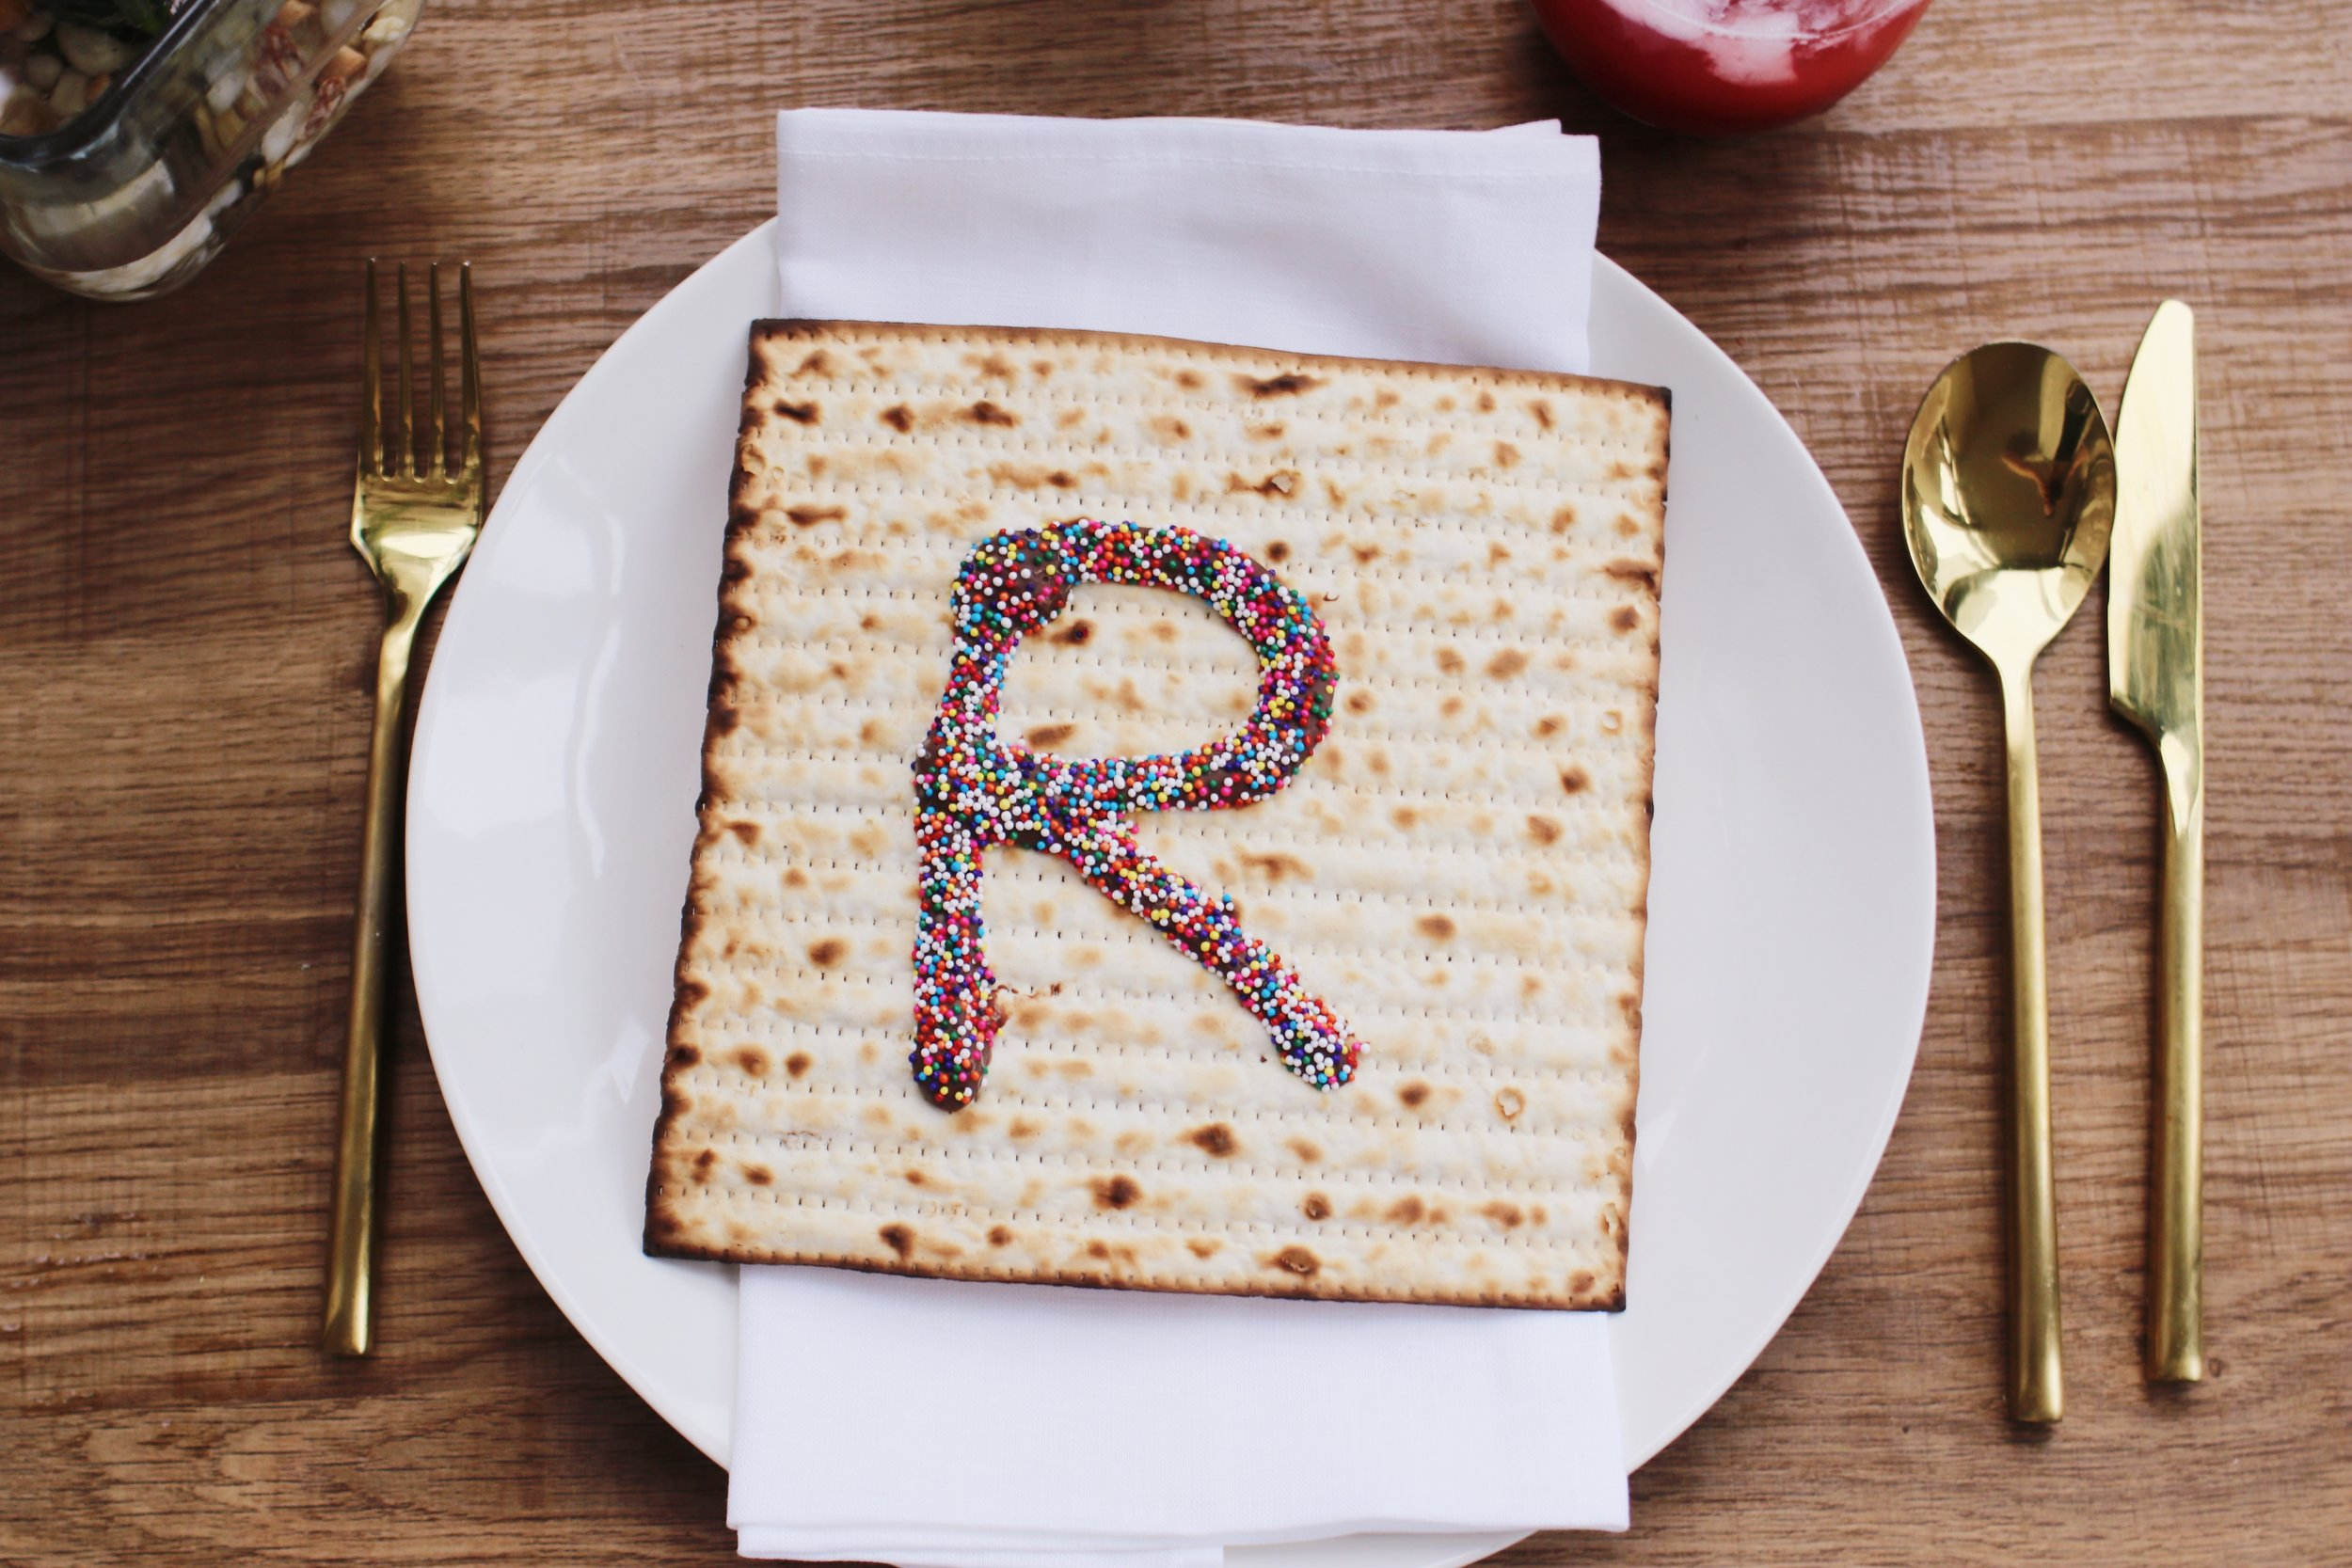 passover-decor-place-setting-ideas-table-setting-ideas-matzah-chocolate-14